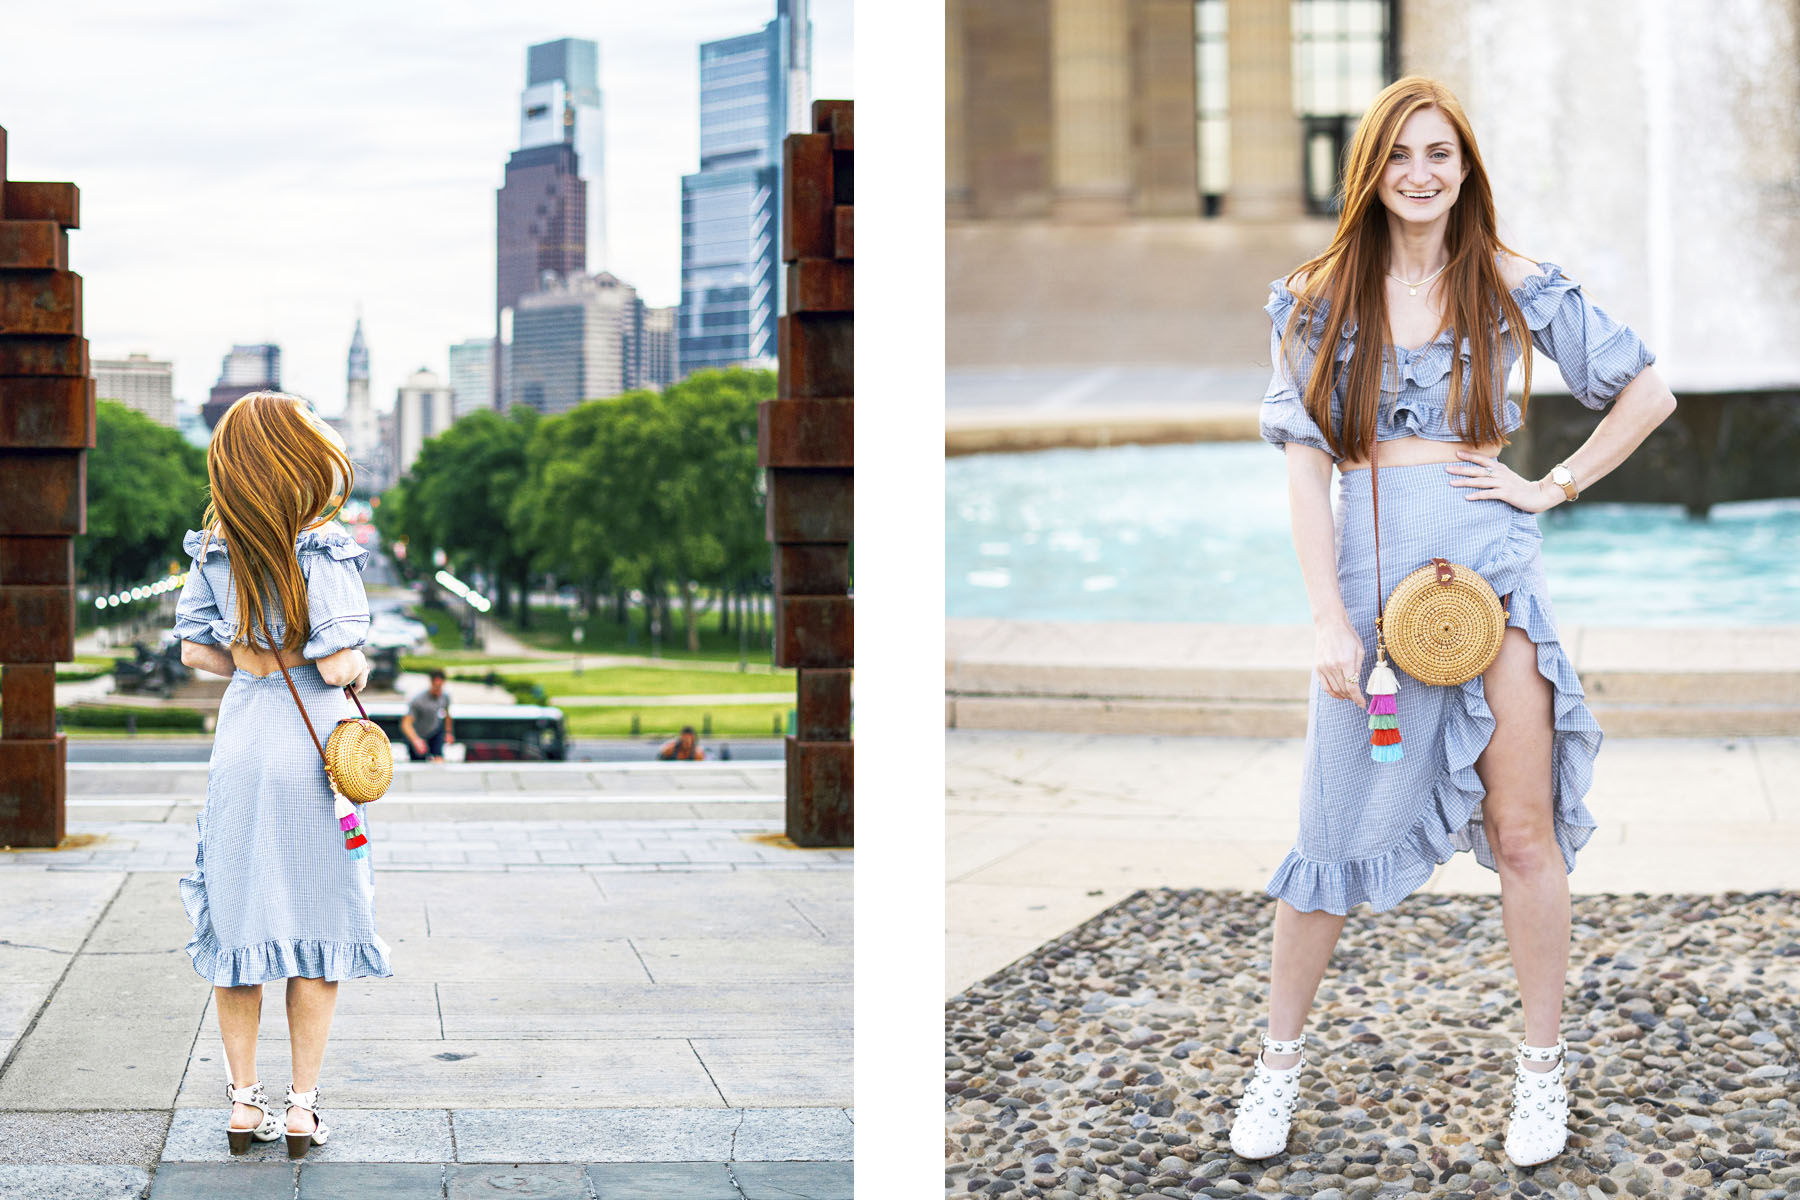 Ruffles,Erin Leigh of She's Red Haute redhead wearing blue ruffle outfit and brown circle bag looking out at Philly skyline